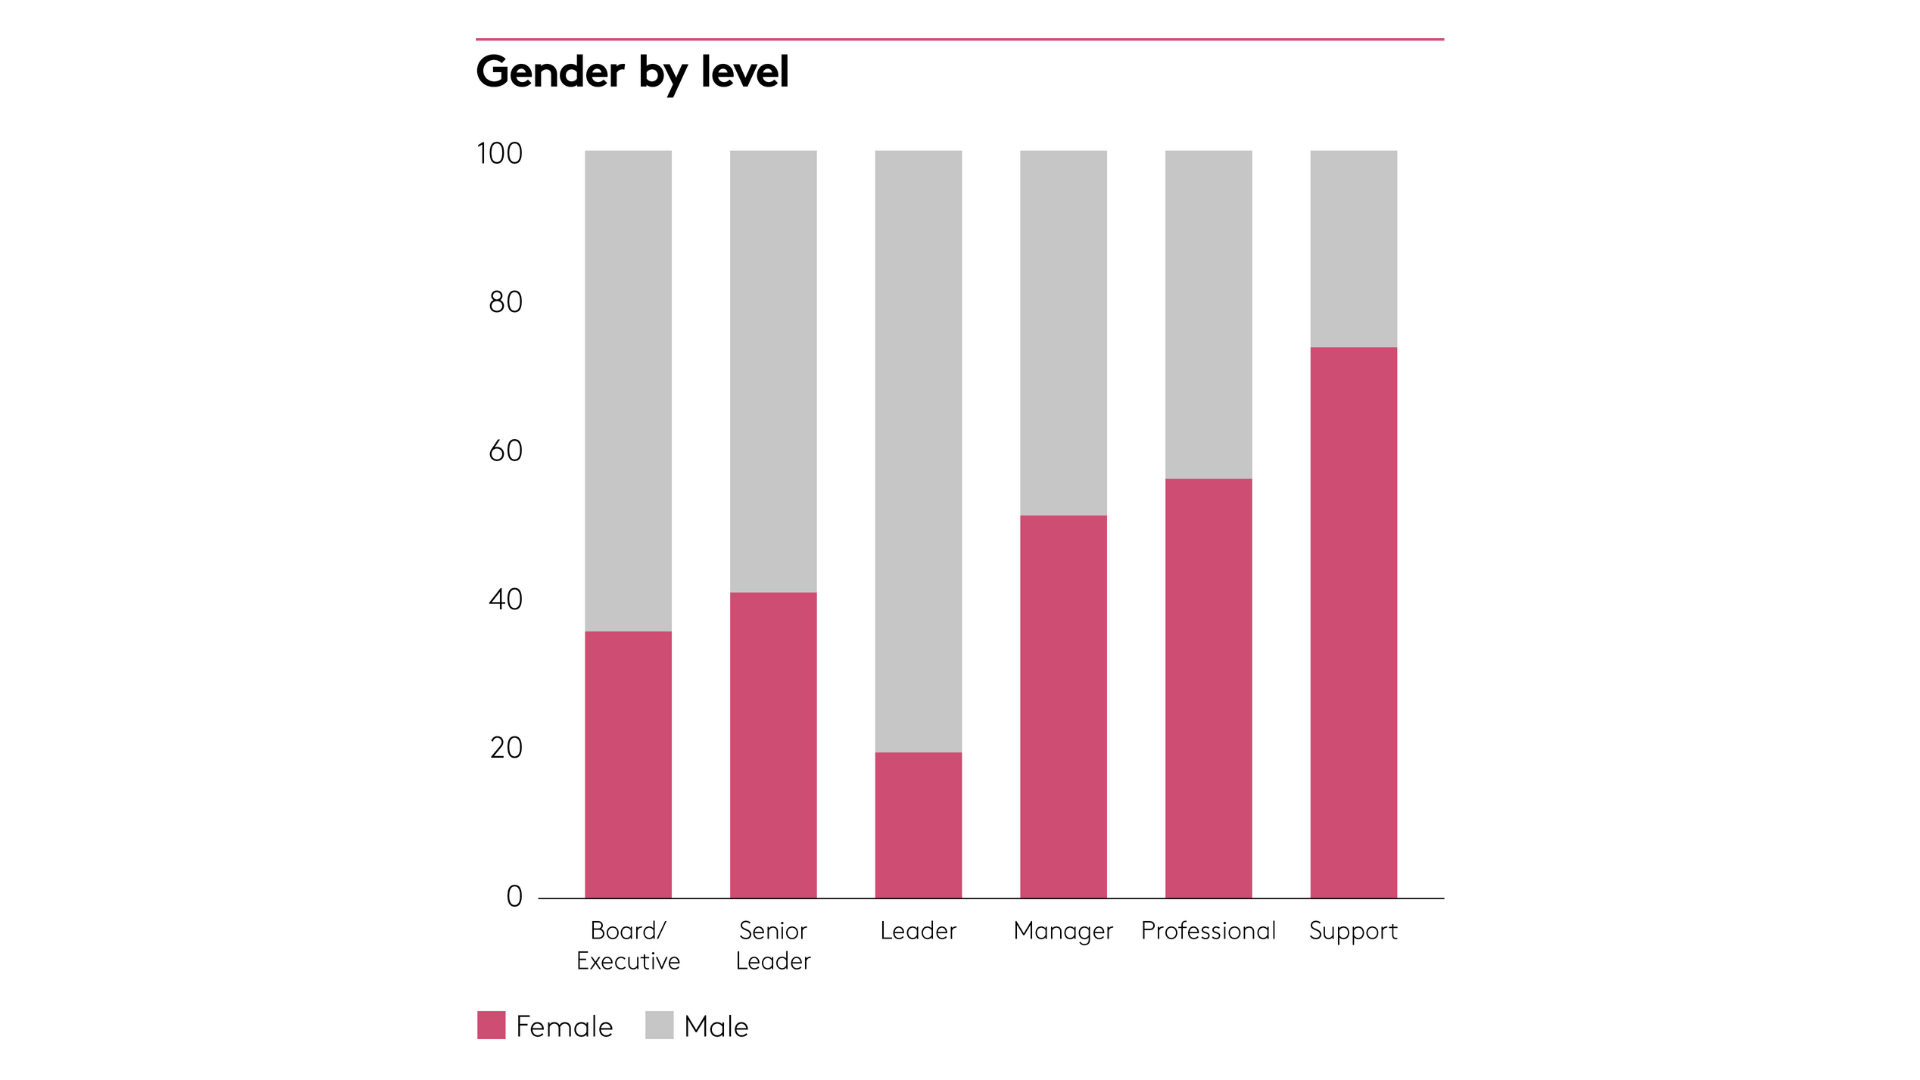 Gender by level